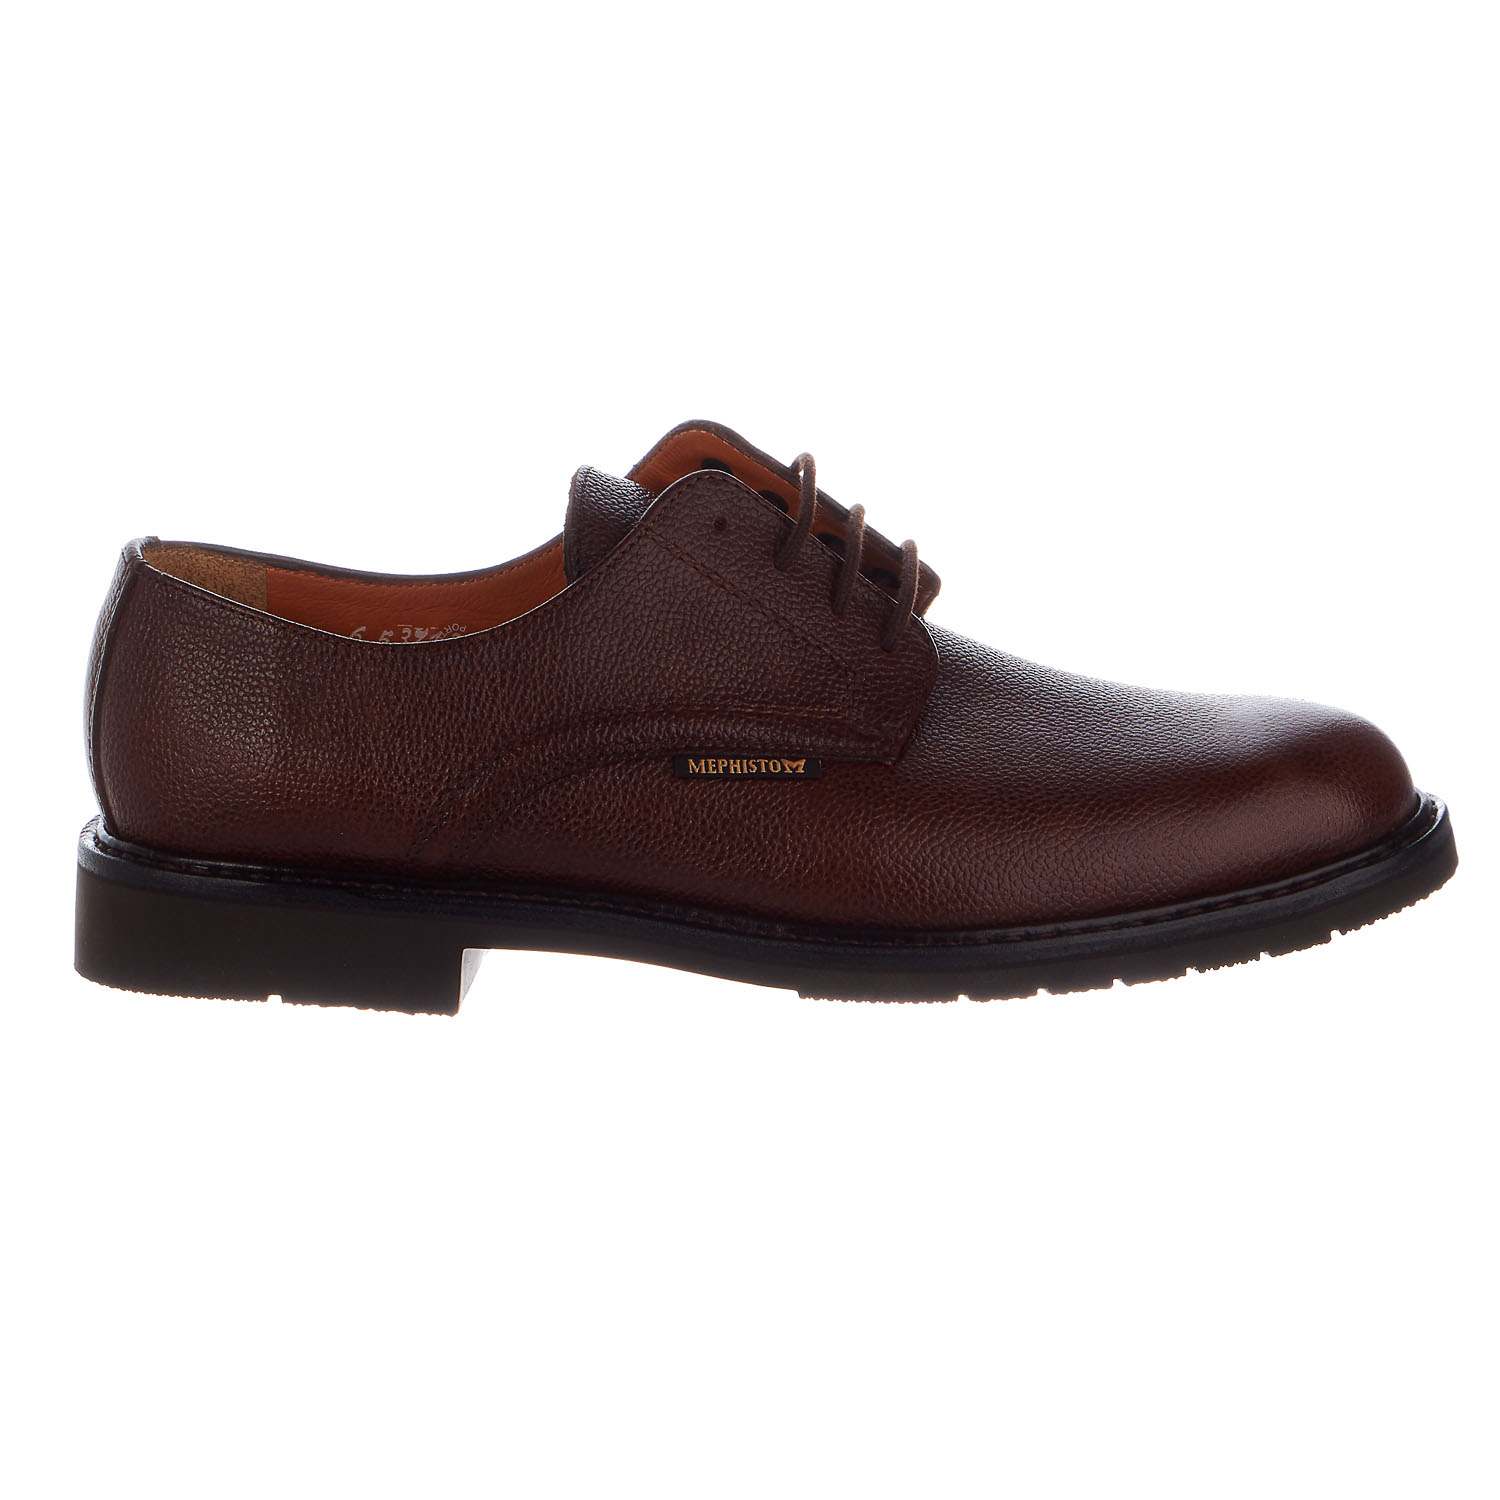 Mephisto Marlon Lace-Up Oxford Shoe Mens by Mephisto